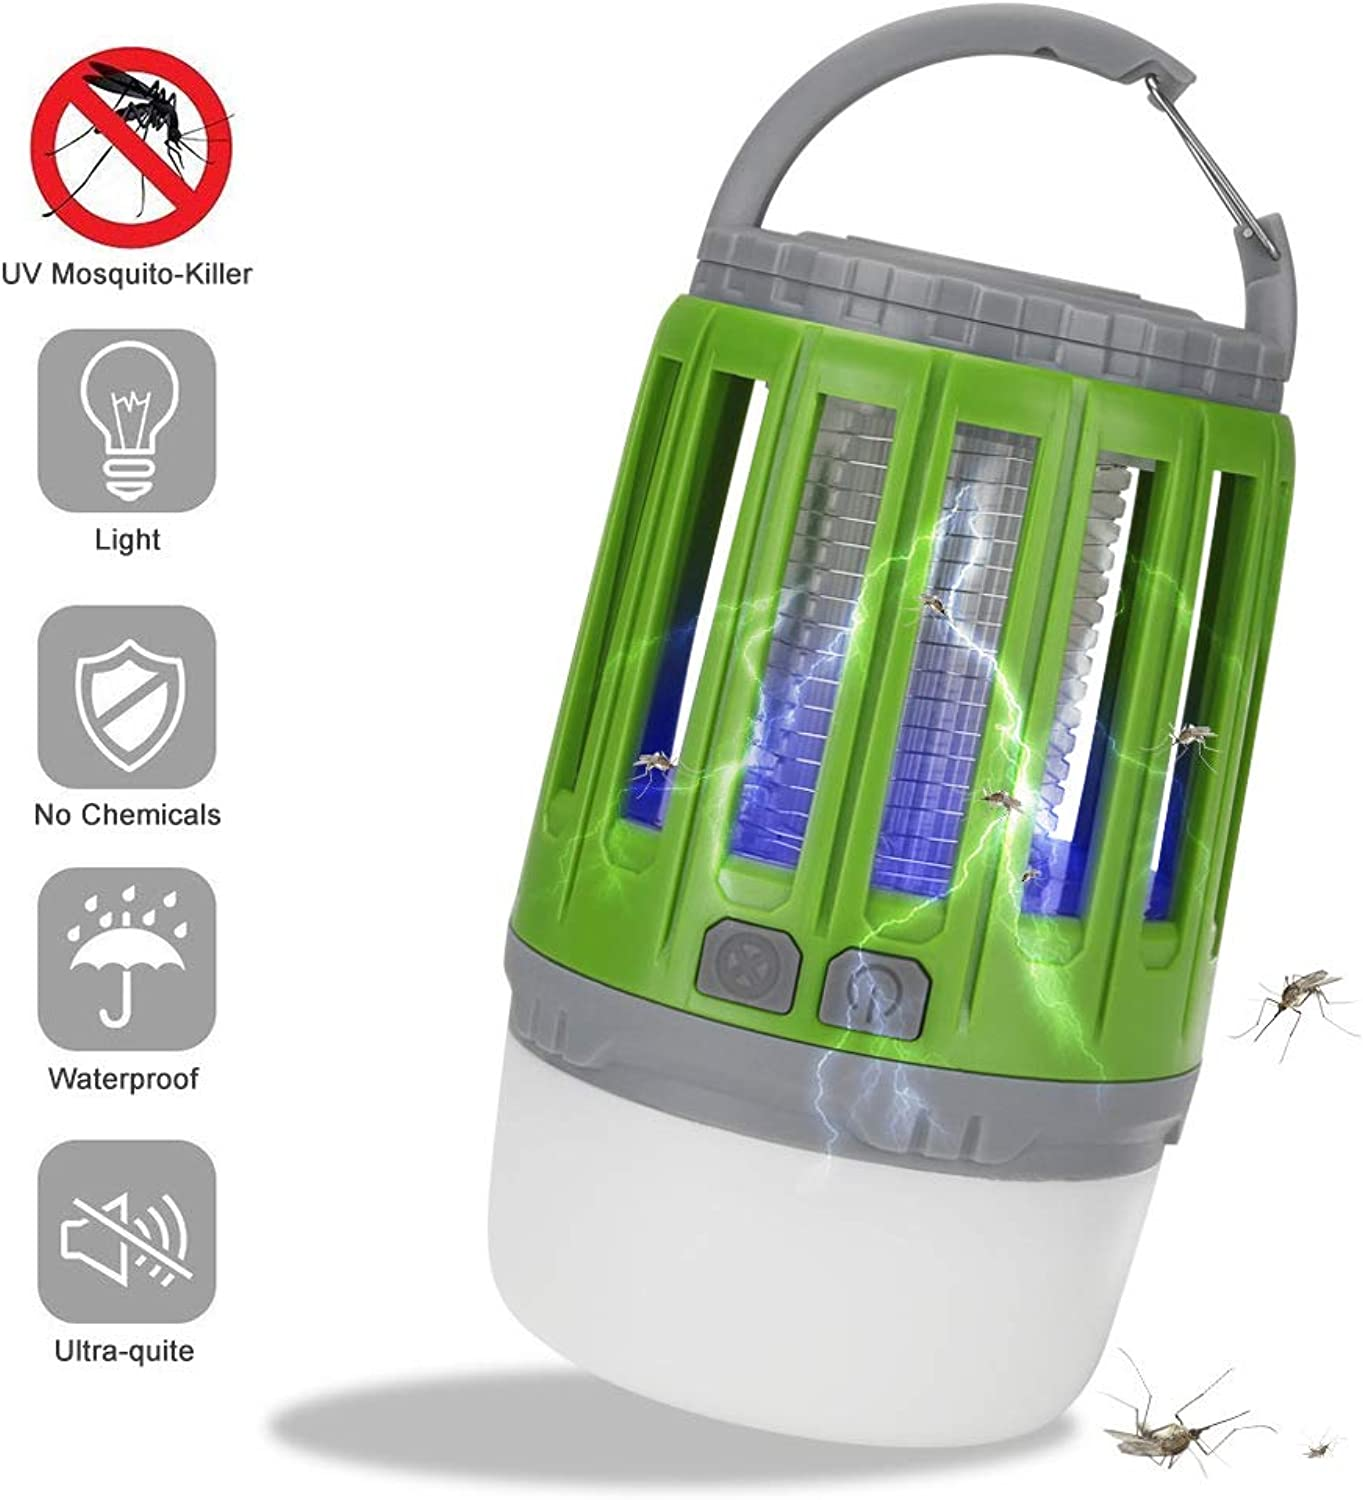 2 in 1 USB Rechargeable Bug Zapper, LED Light 360400NM UV Outdoor Mosquito Zapper Light for Bedroom, Garden,Camping,Green